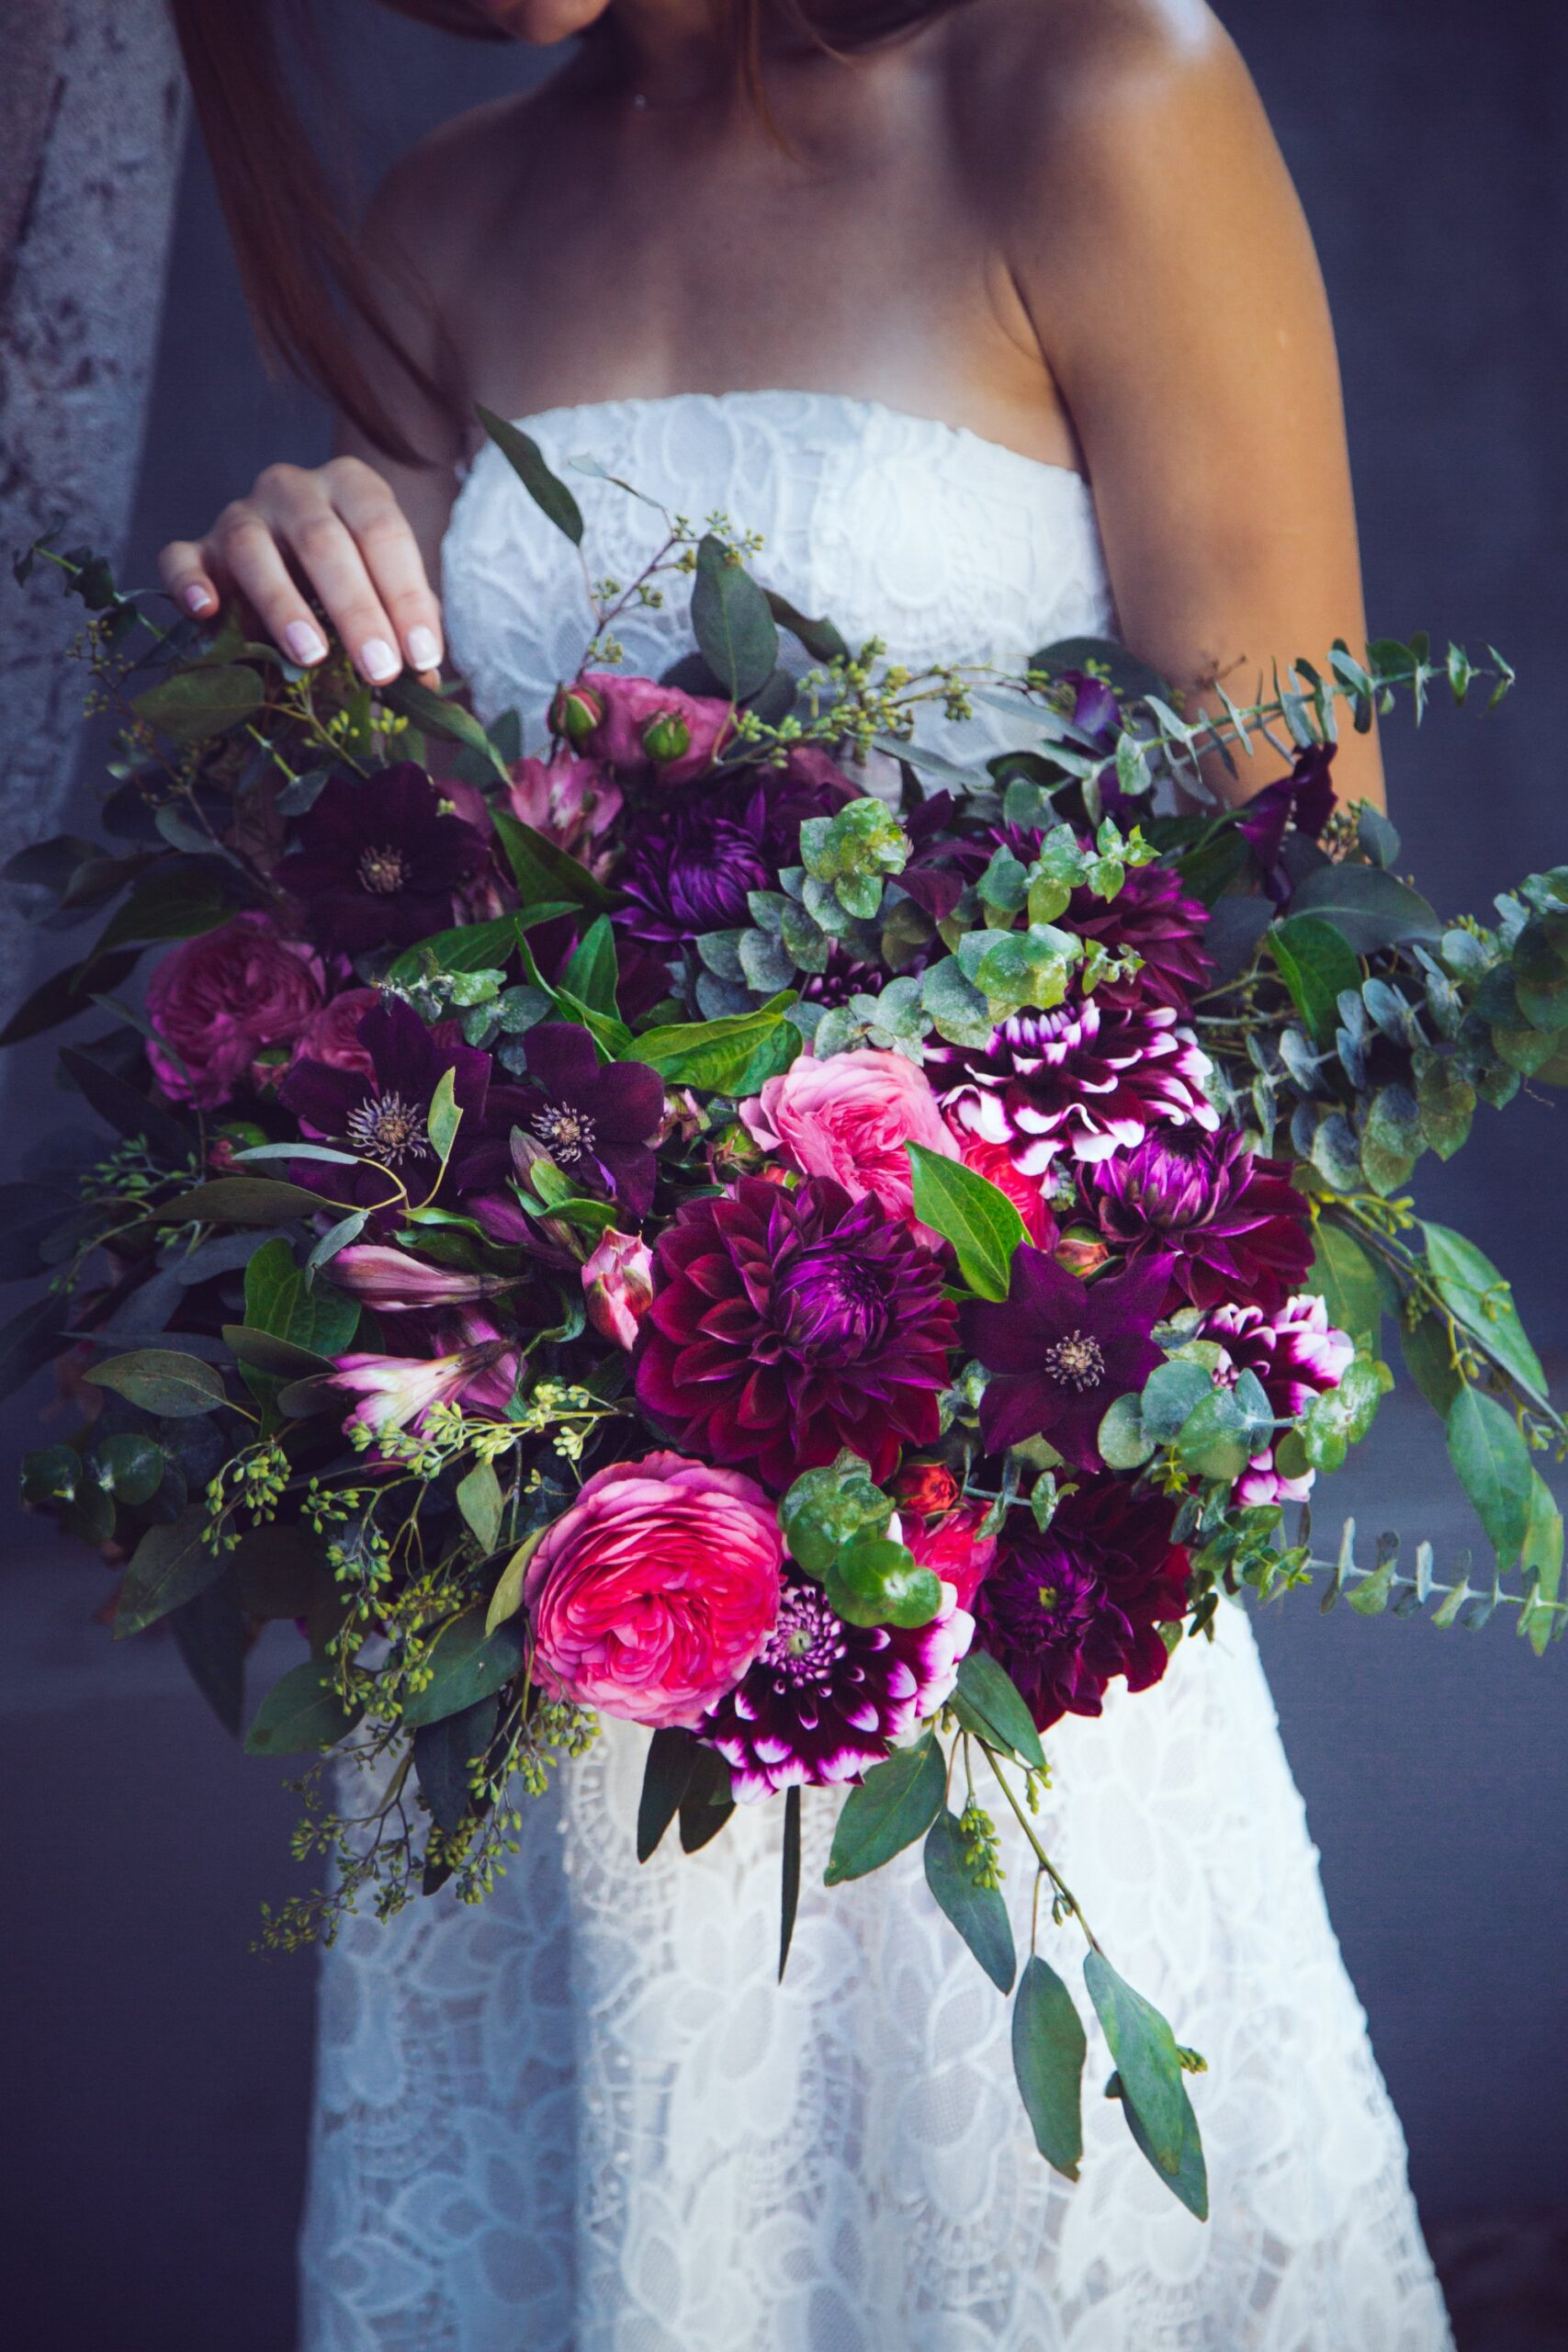 choose purple tulip wedding bouquets for your wedding 6 scaled - Choose Purple tulip wedding bouquets for Your Wedding